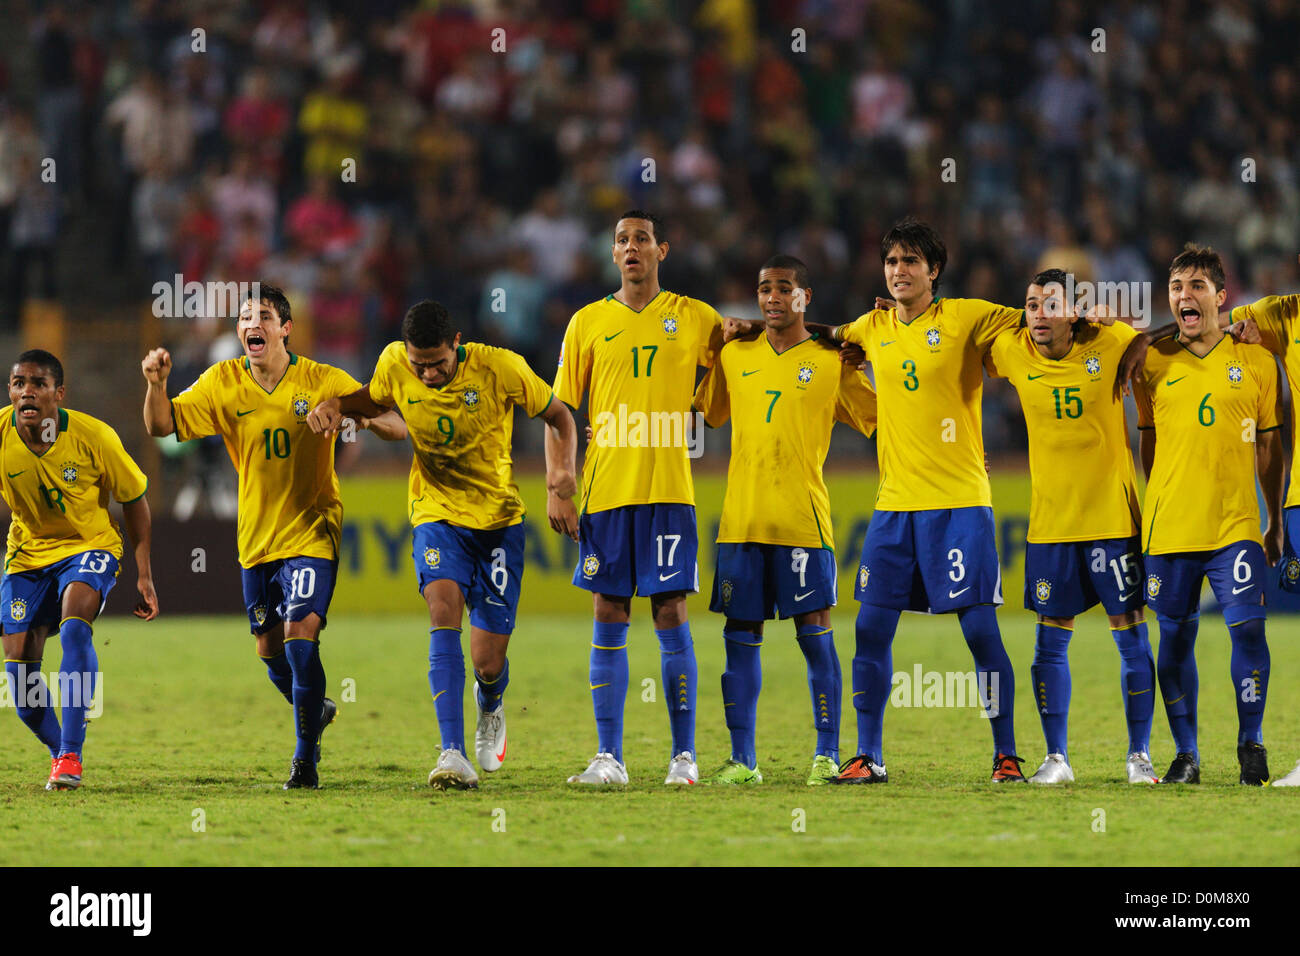 Brazil players react to a teammate's penalty kick during the shootout against Ghana to determine the 2009 FIFA - Stock Image